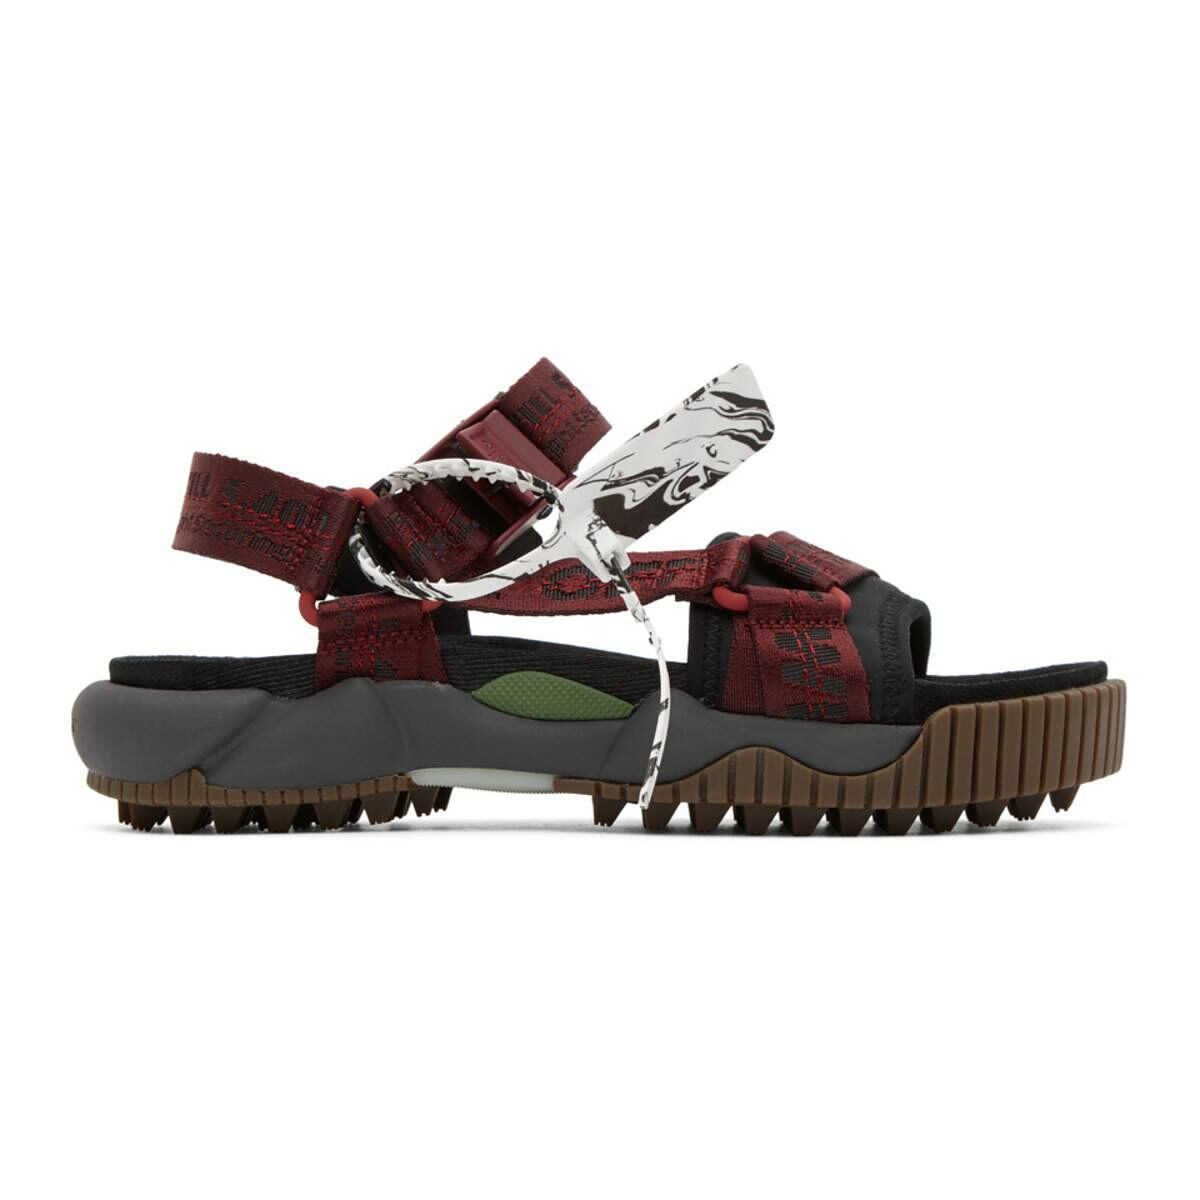 Off-White Red and Black ODSY Trekking Sandals Ssense USA MEN Men SHOES Mens SANDALS